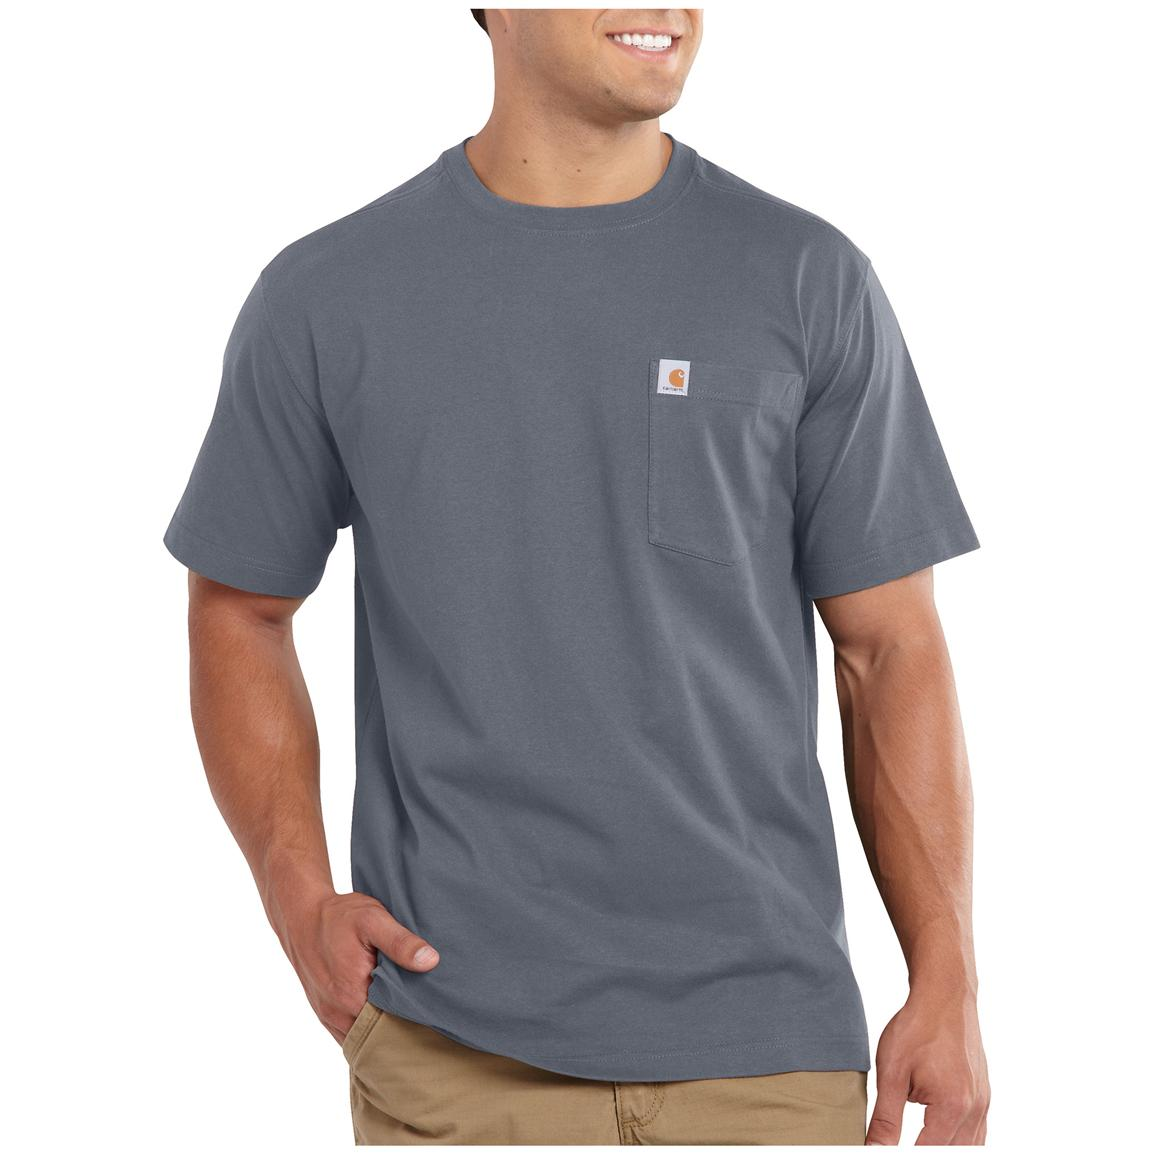 Carhartt Maddock Pocket Short-sleeve T-shirt, Flint Stone